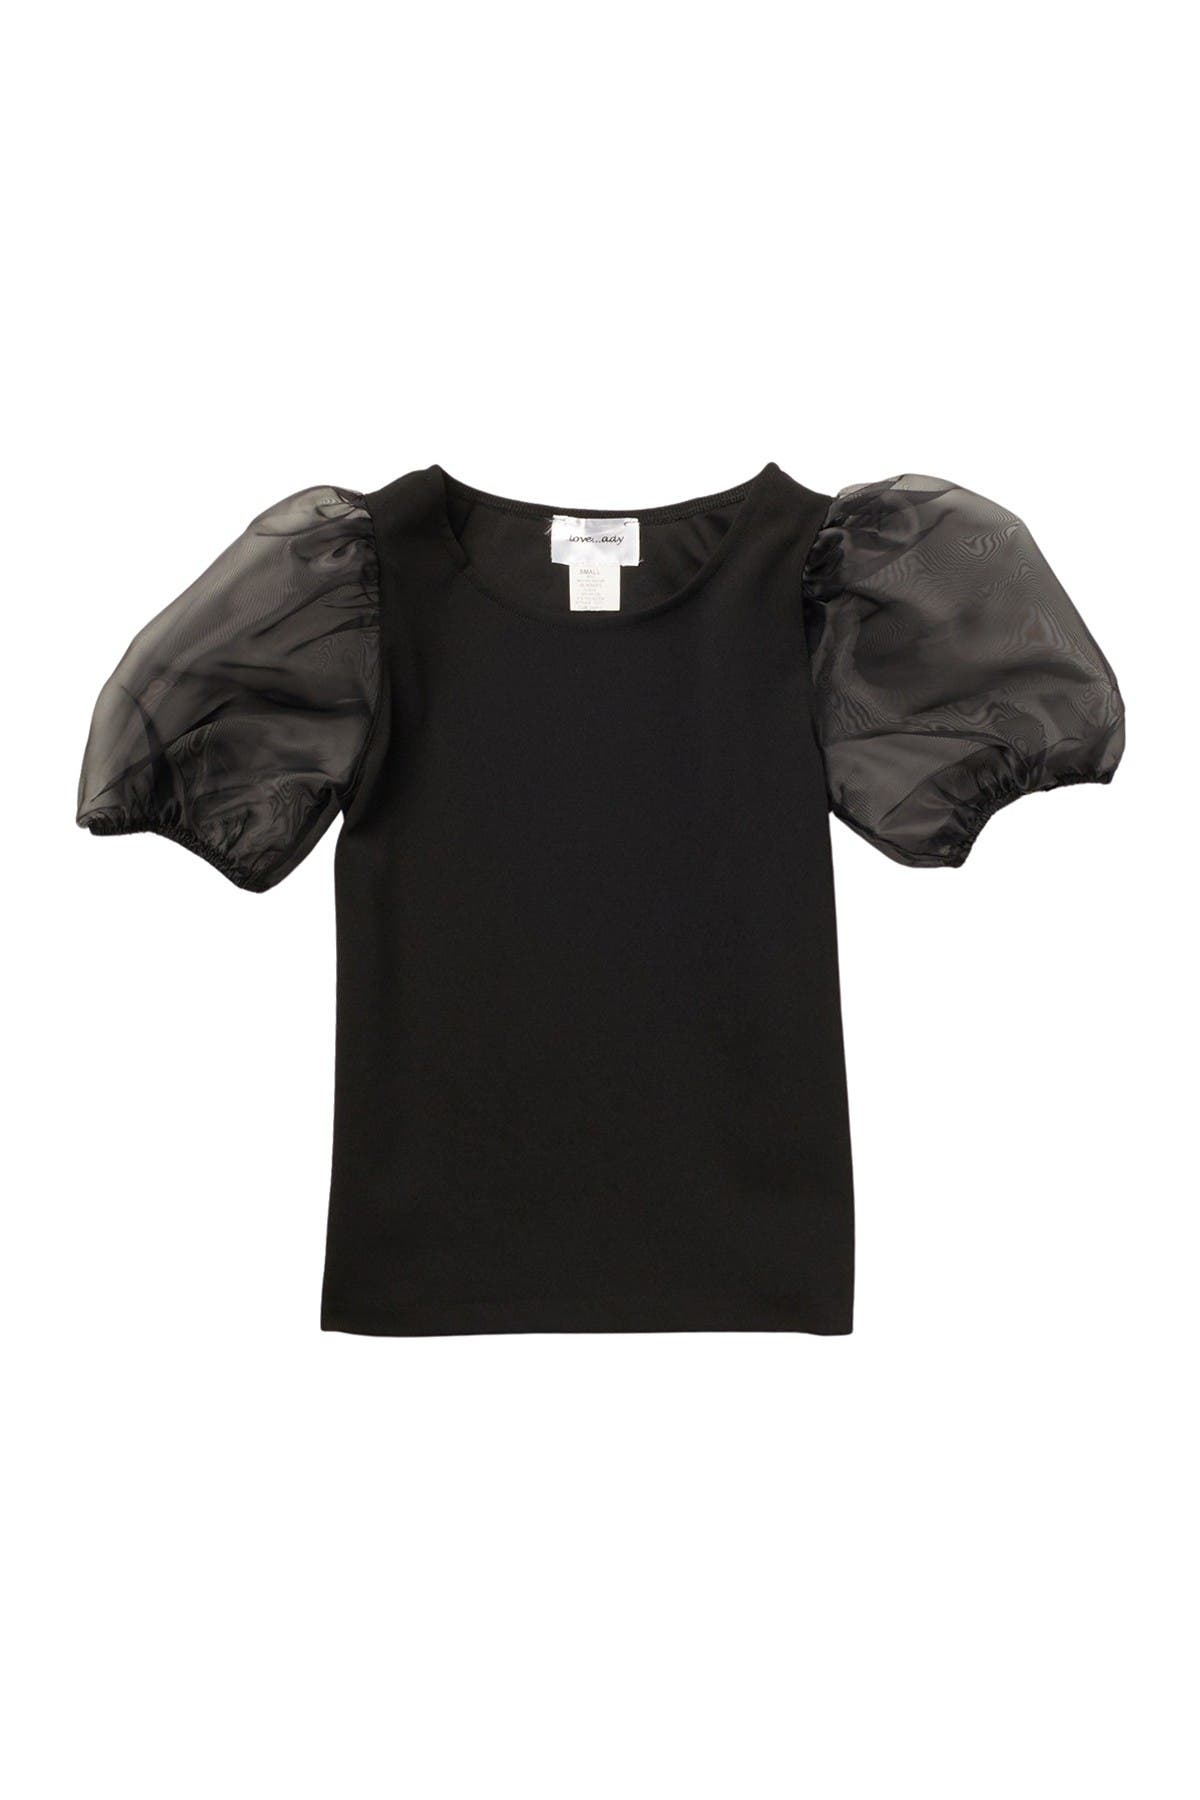 Image of Love...Ady Sheer Puff Sleeve Top